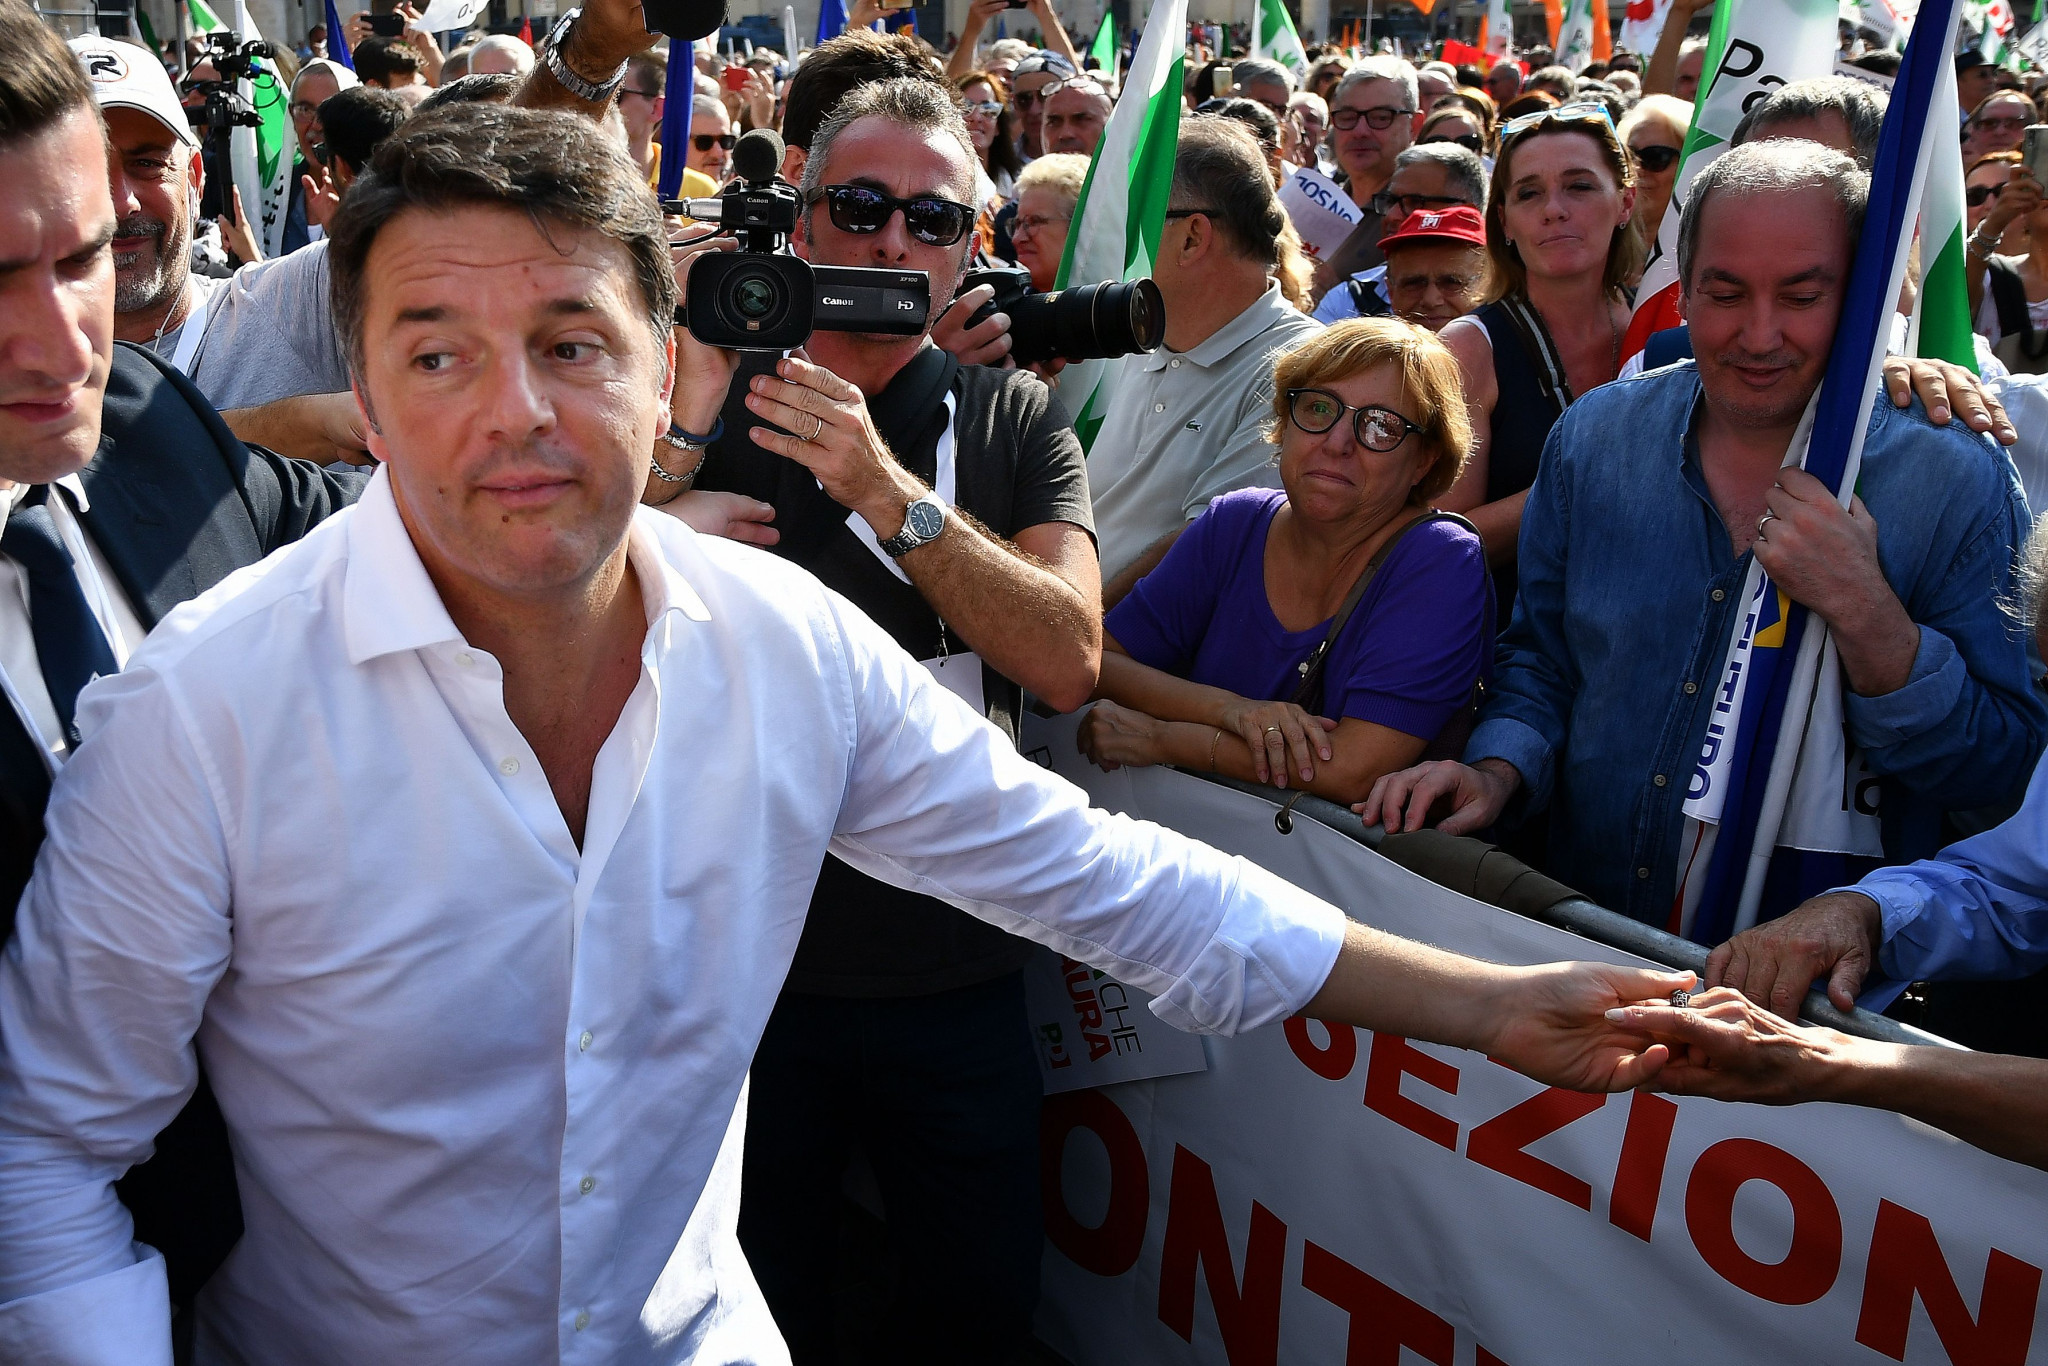 Italy's Prime Minister Matteo Renzi claimed bidding for the Olympic Games was an